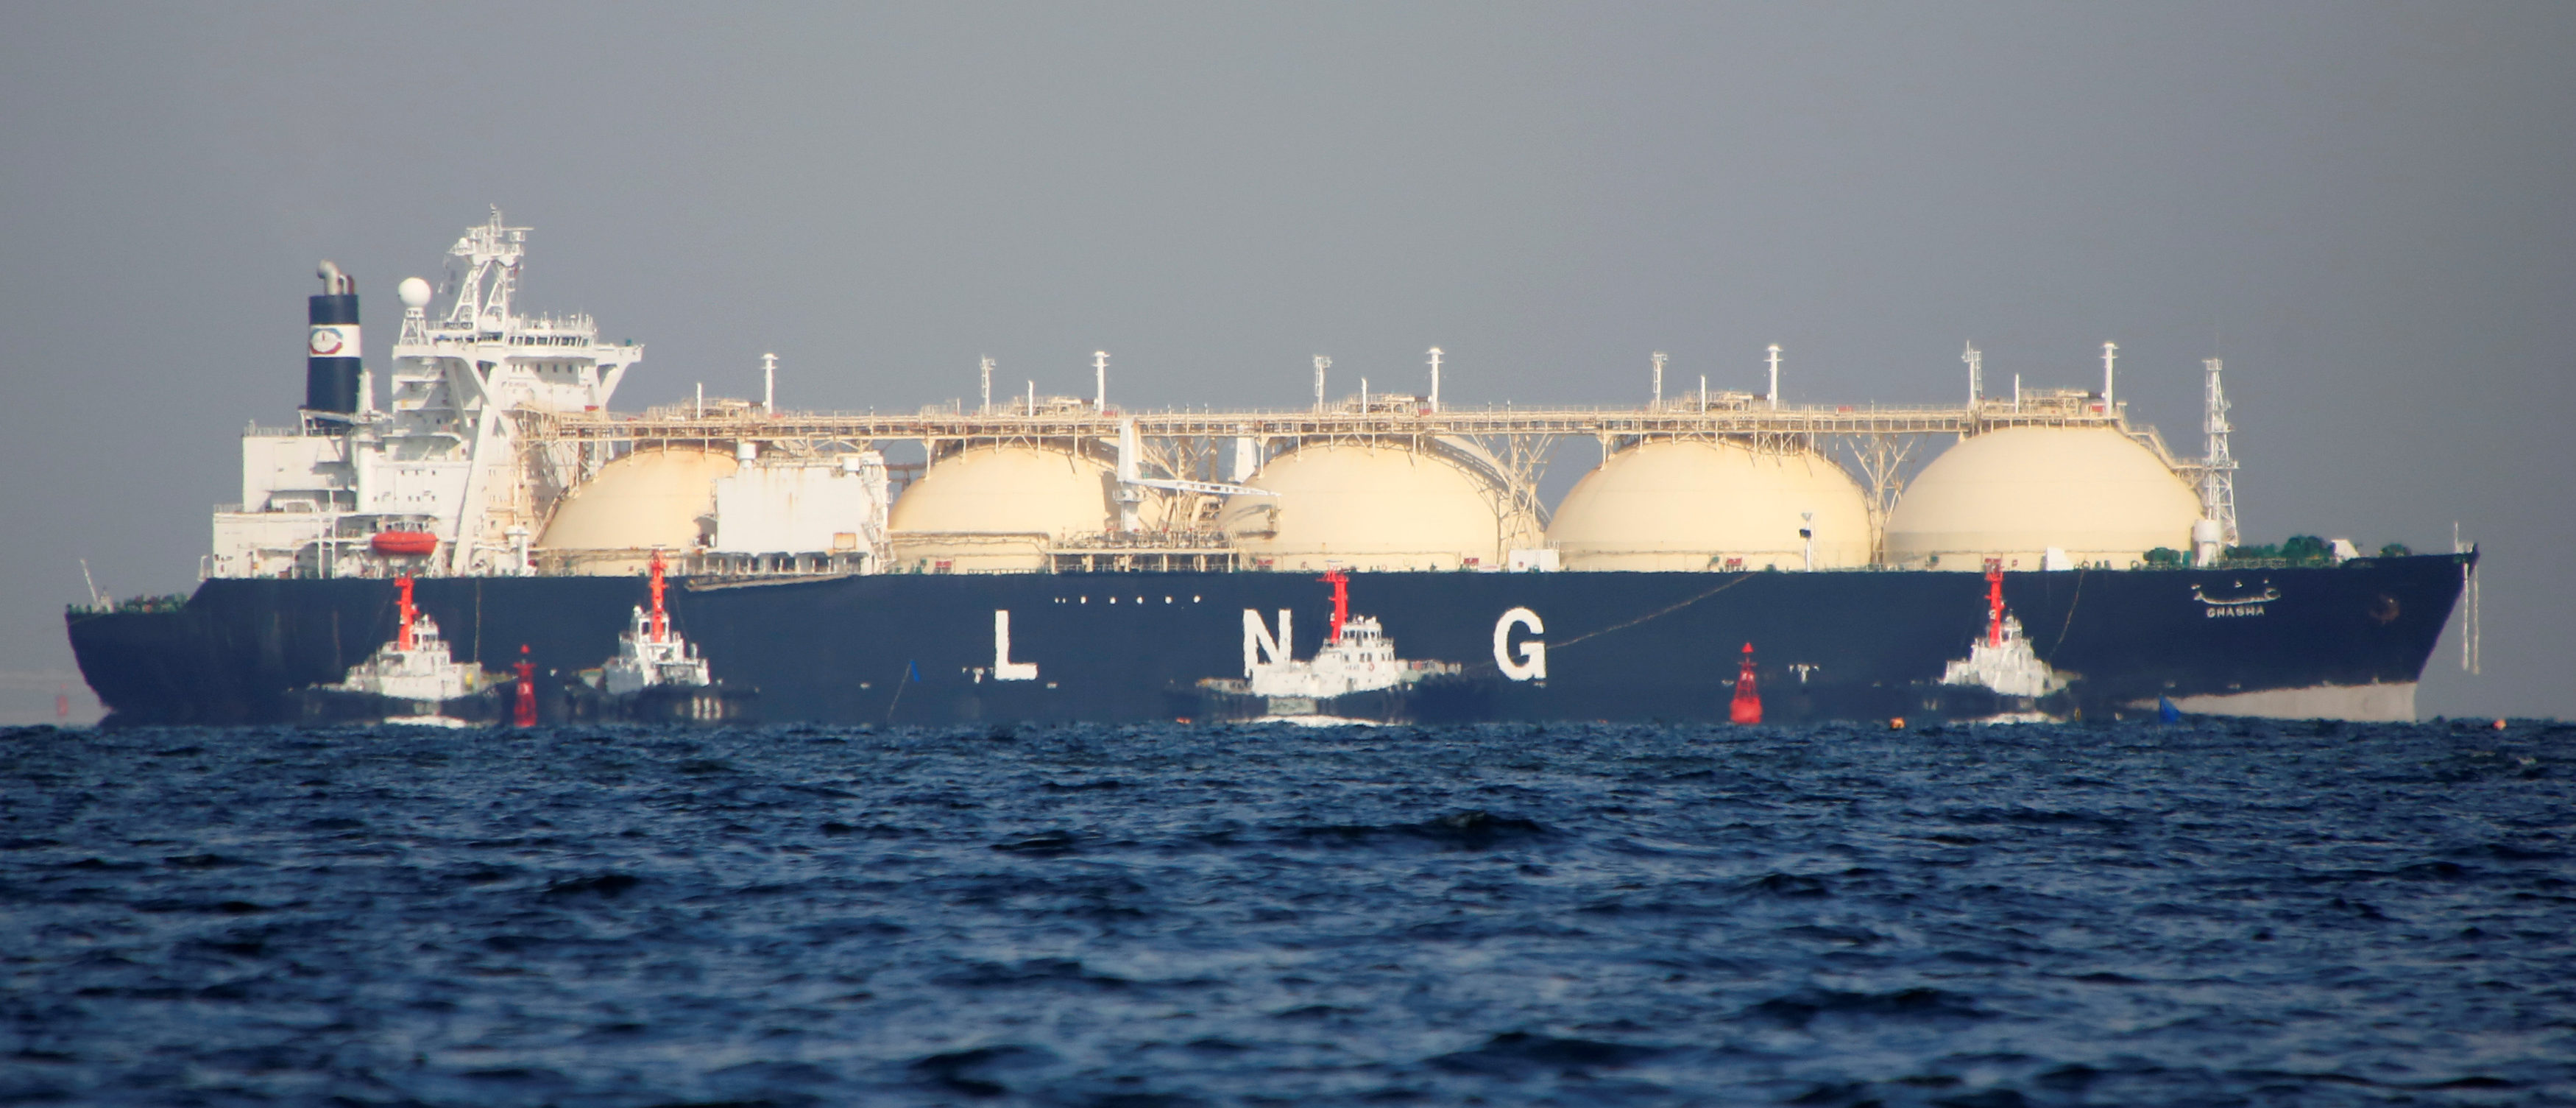 A liquefied natural gas (LNG) tanker is tugged towards a thermal power station in Futtsu, east of Tokyo, Japan November 13, 2017. Picture taken November 13, 2017. REUTERS/Issei Kato   US Makes History On Natural Gas